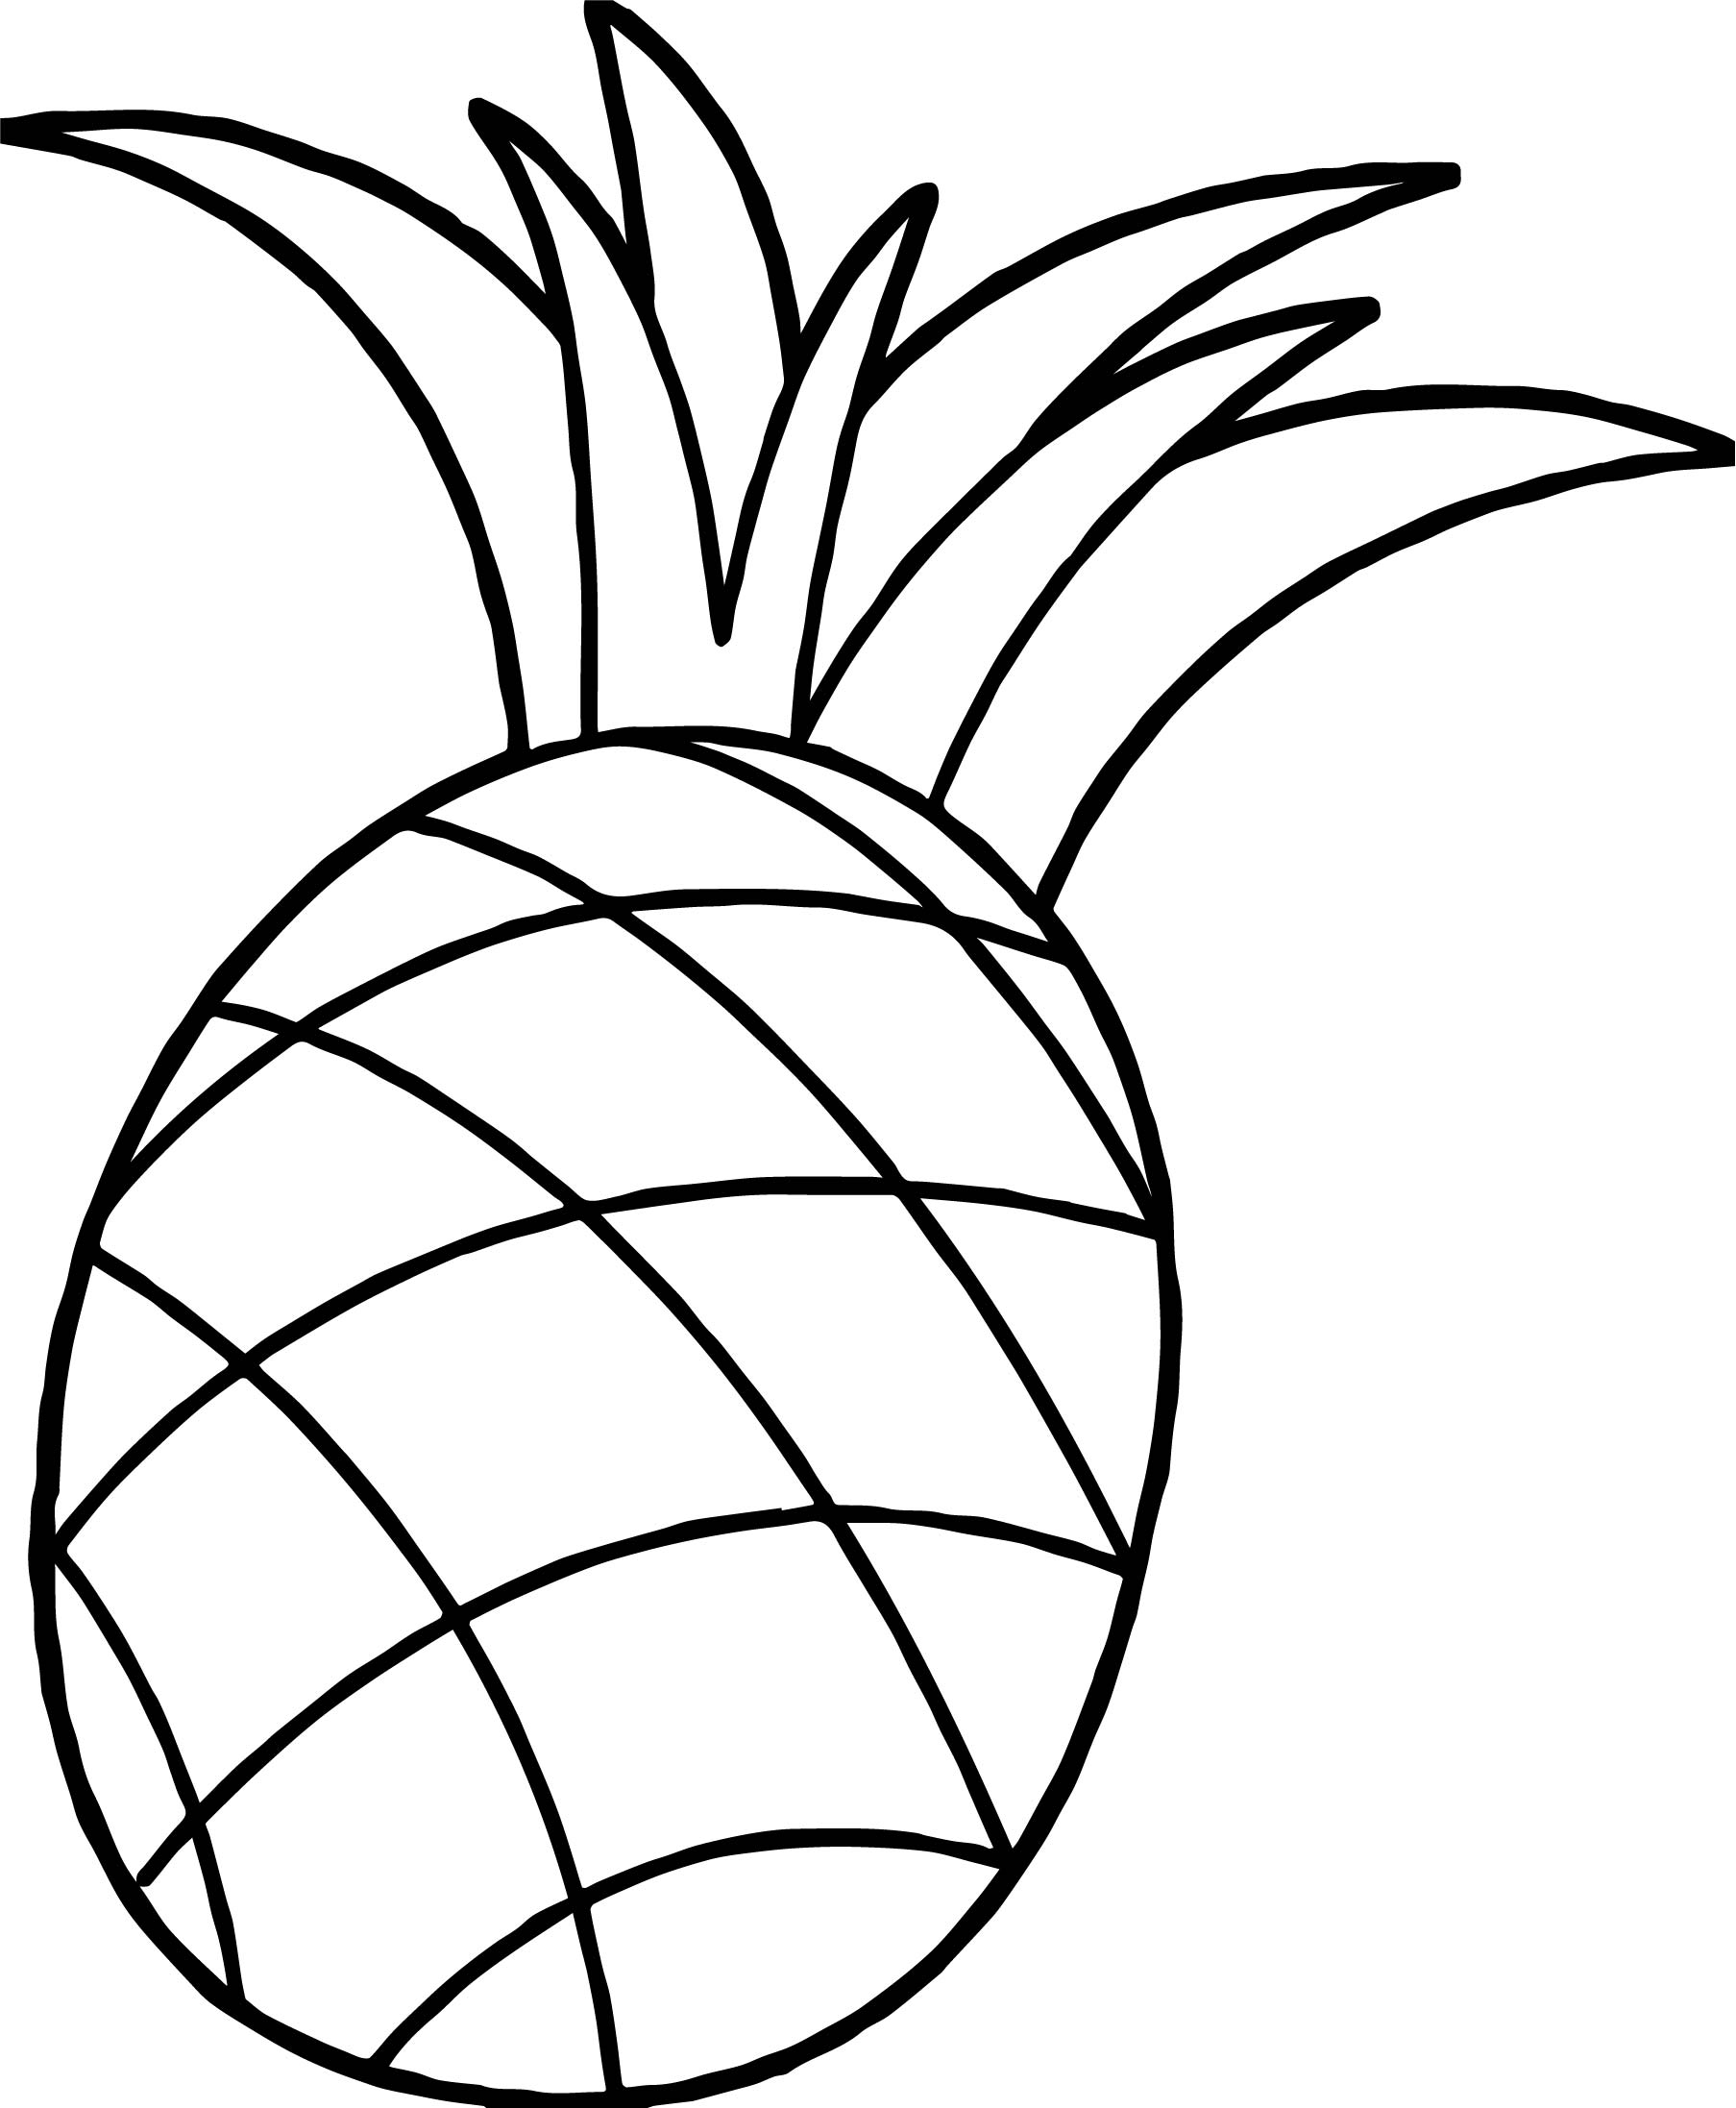 coloring pineapple clipart pine apple drawing at getdrawings free download pineapple coloring clipart